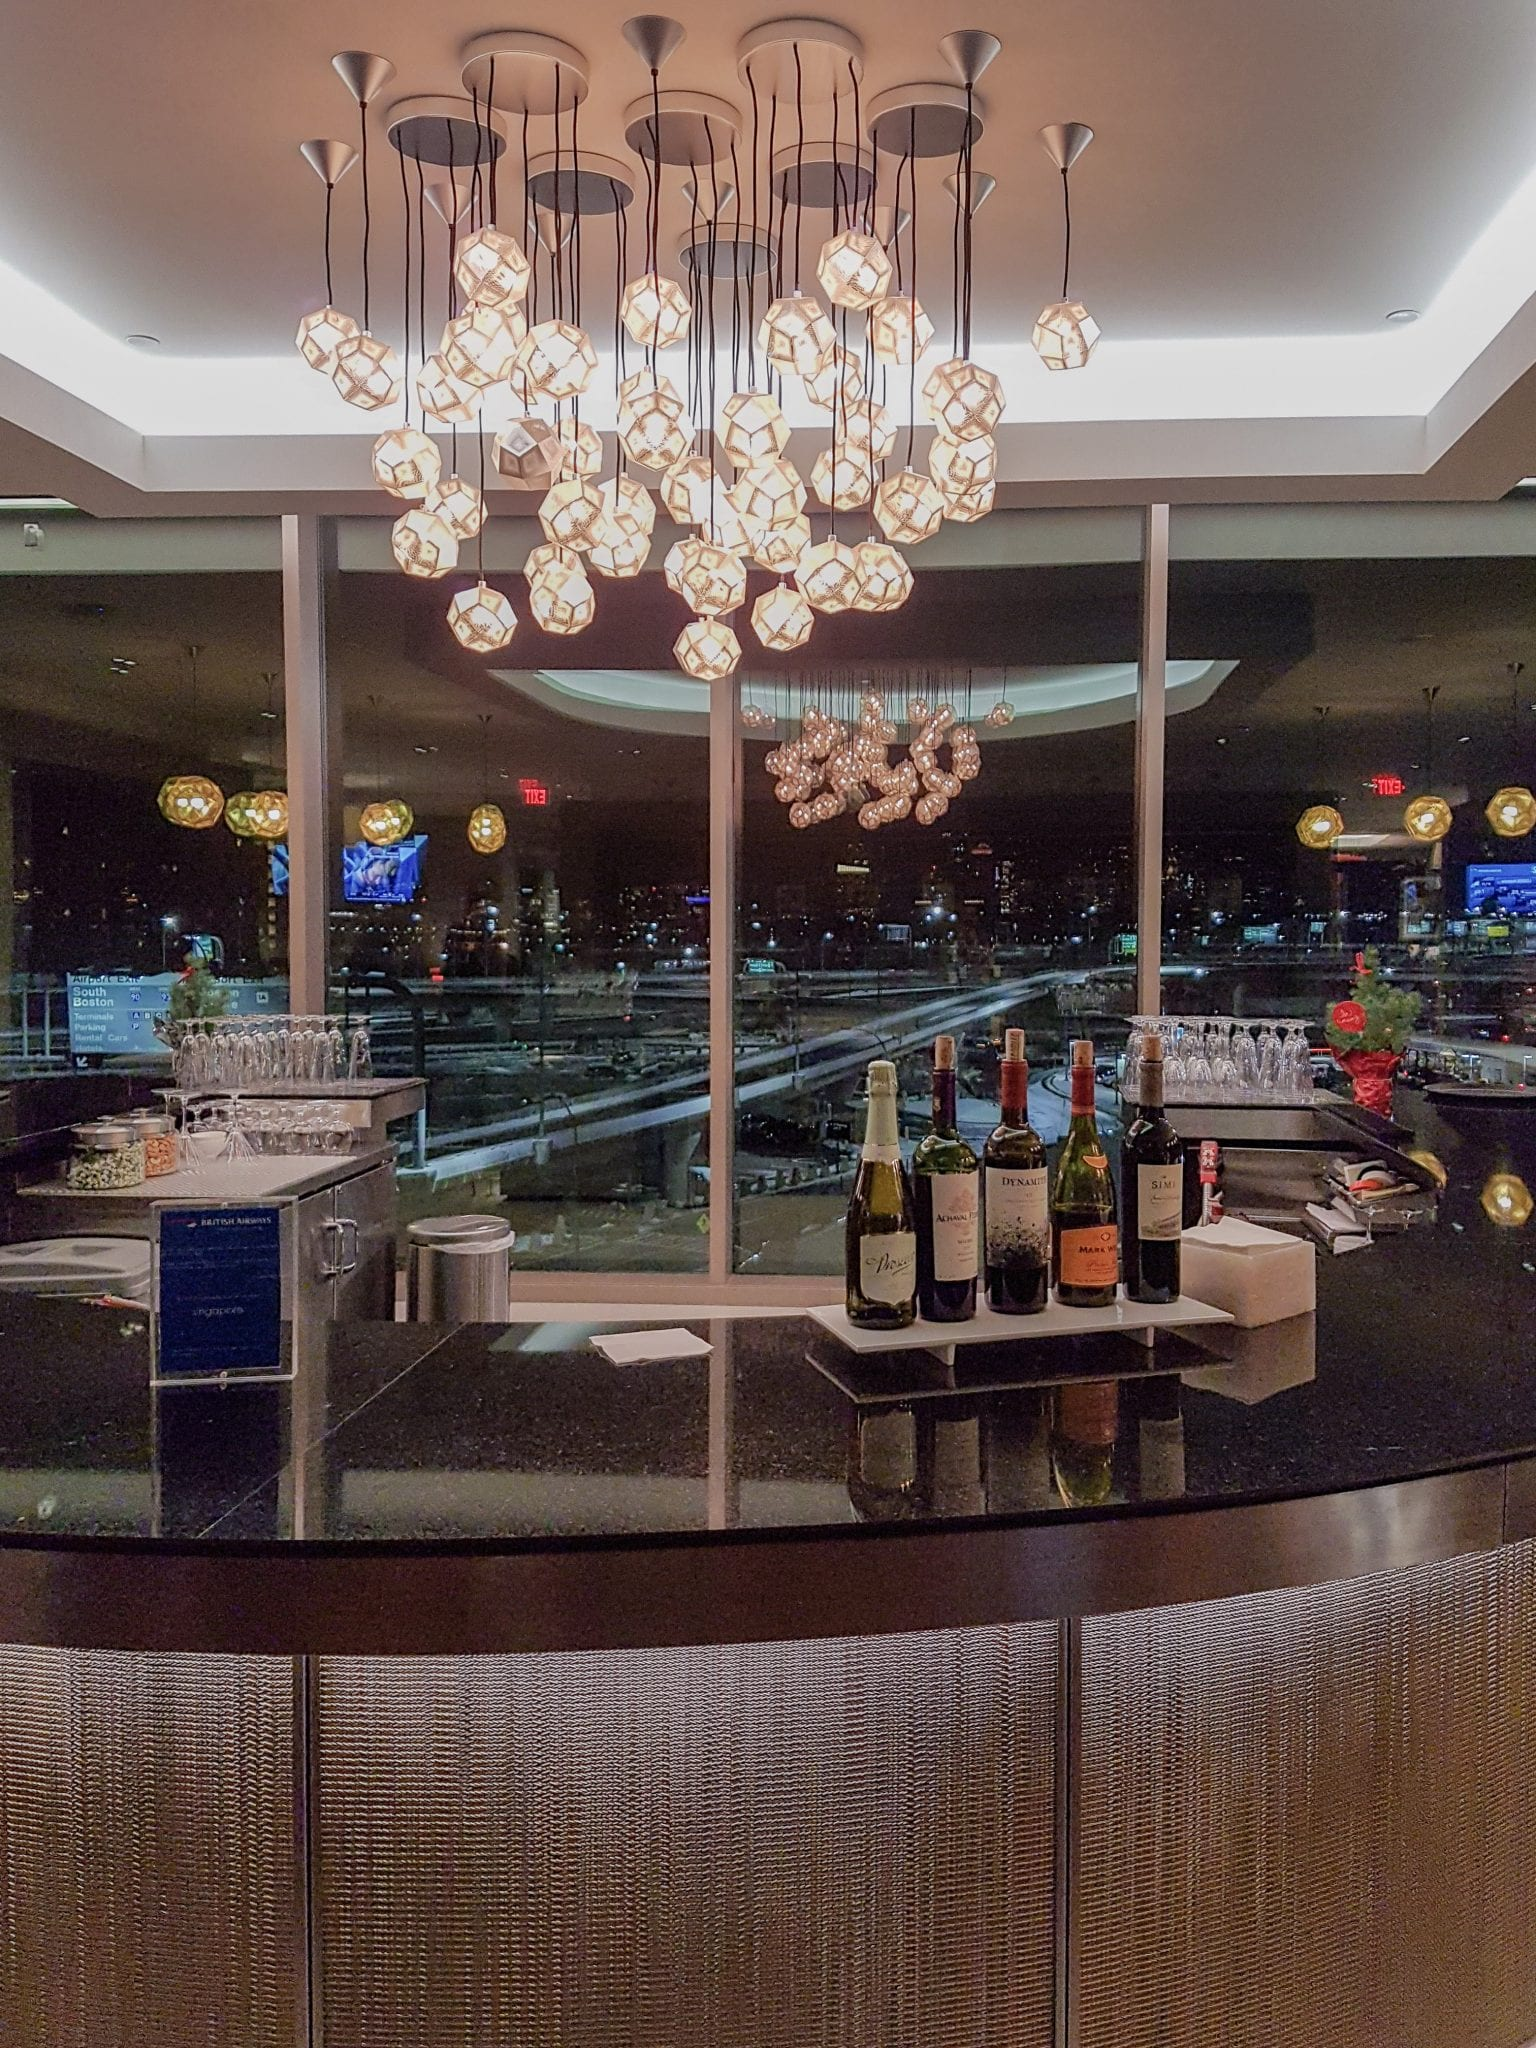 BA lounge BOS 10 - REVIEW - The British Airways Boston Lounge - BOS Terminal E